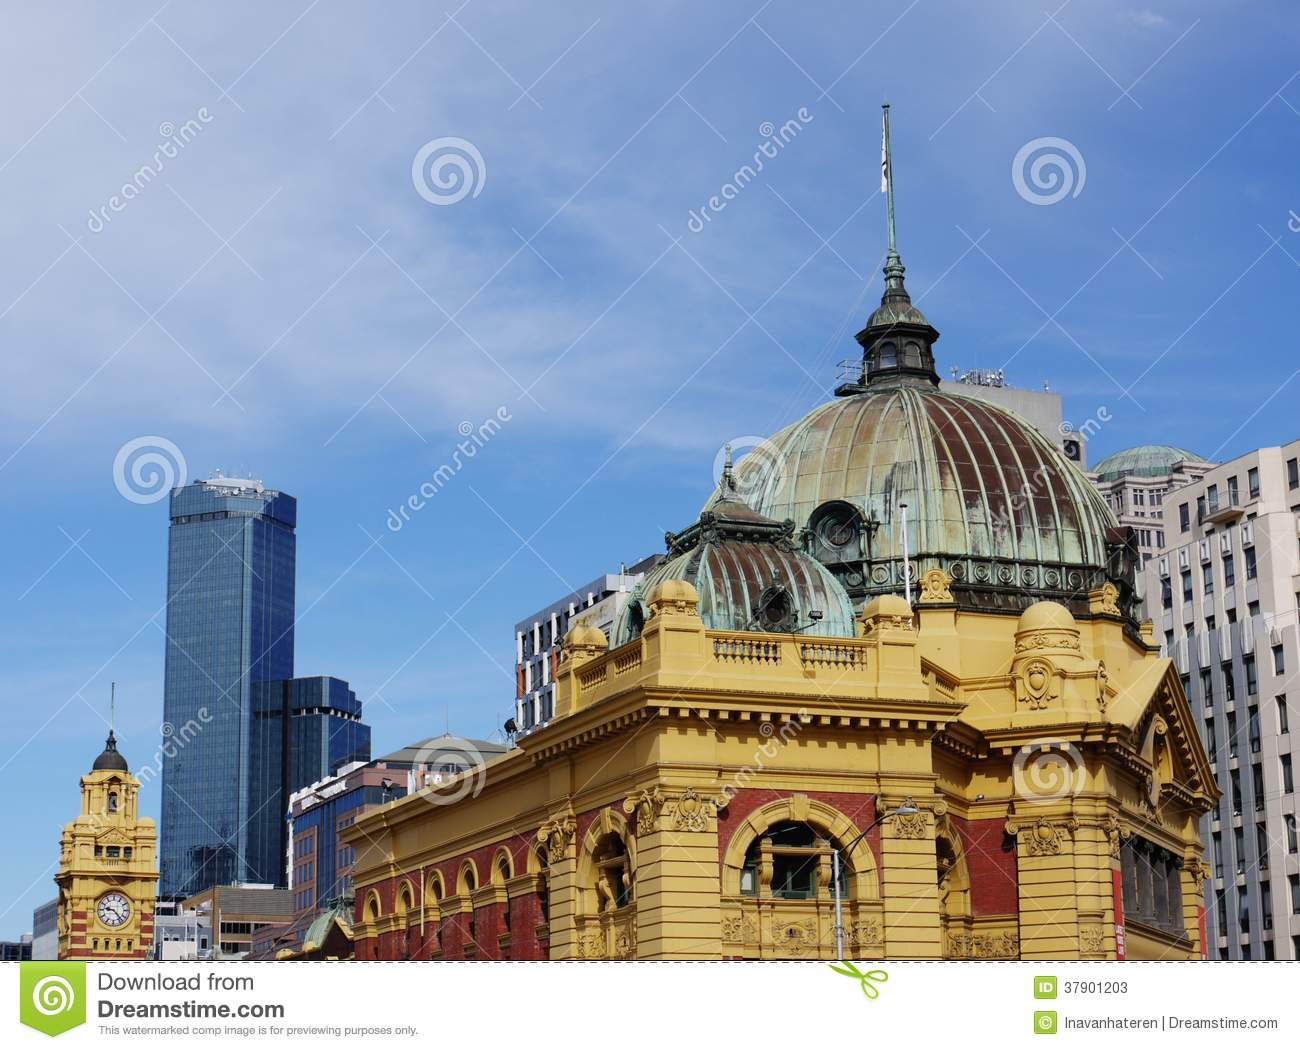 The dome of the yellow Flinders station